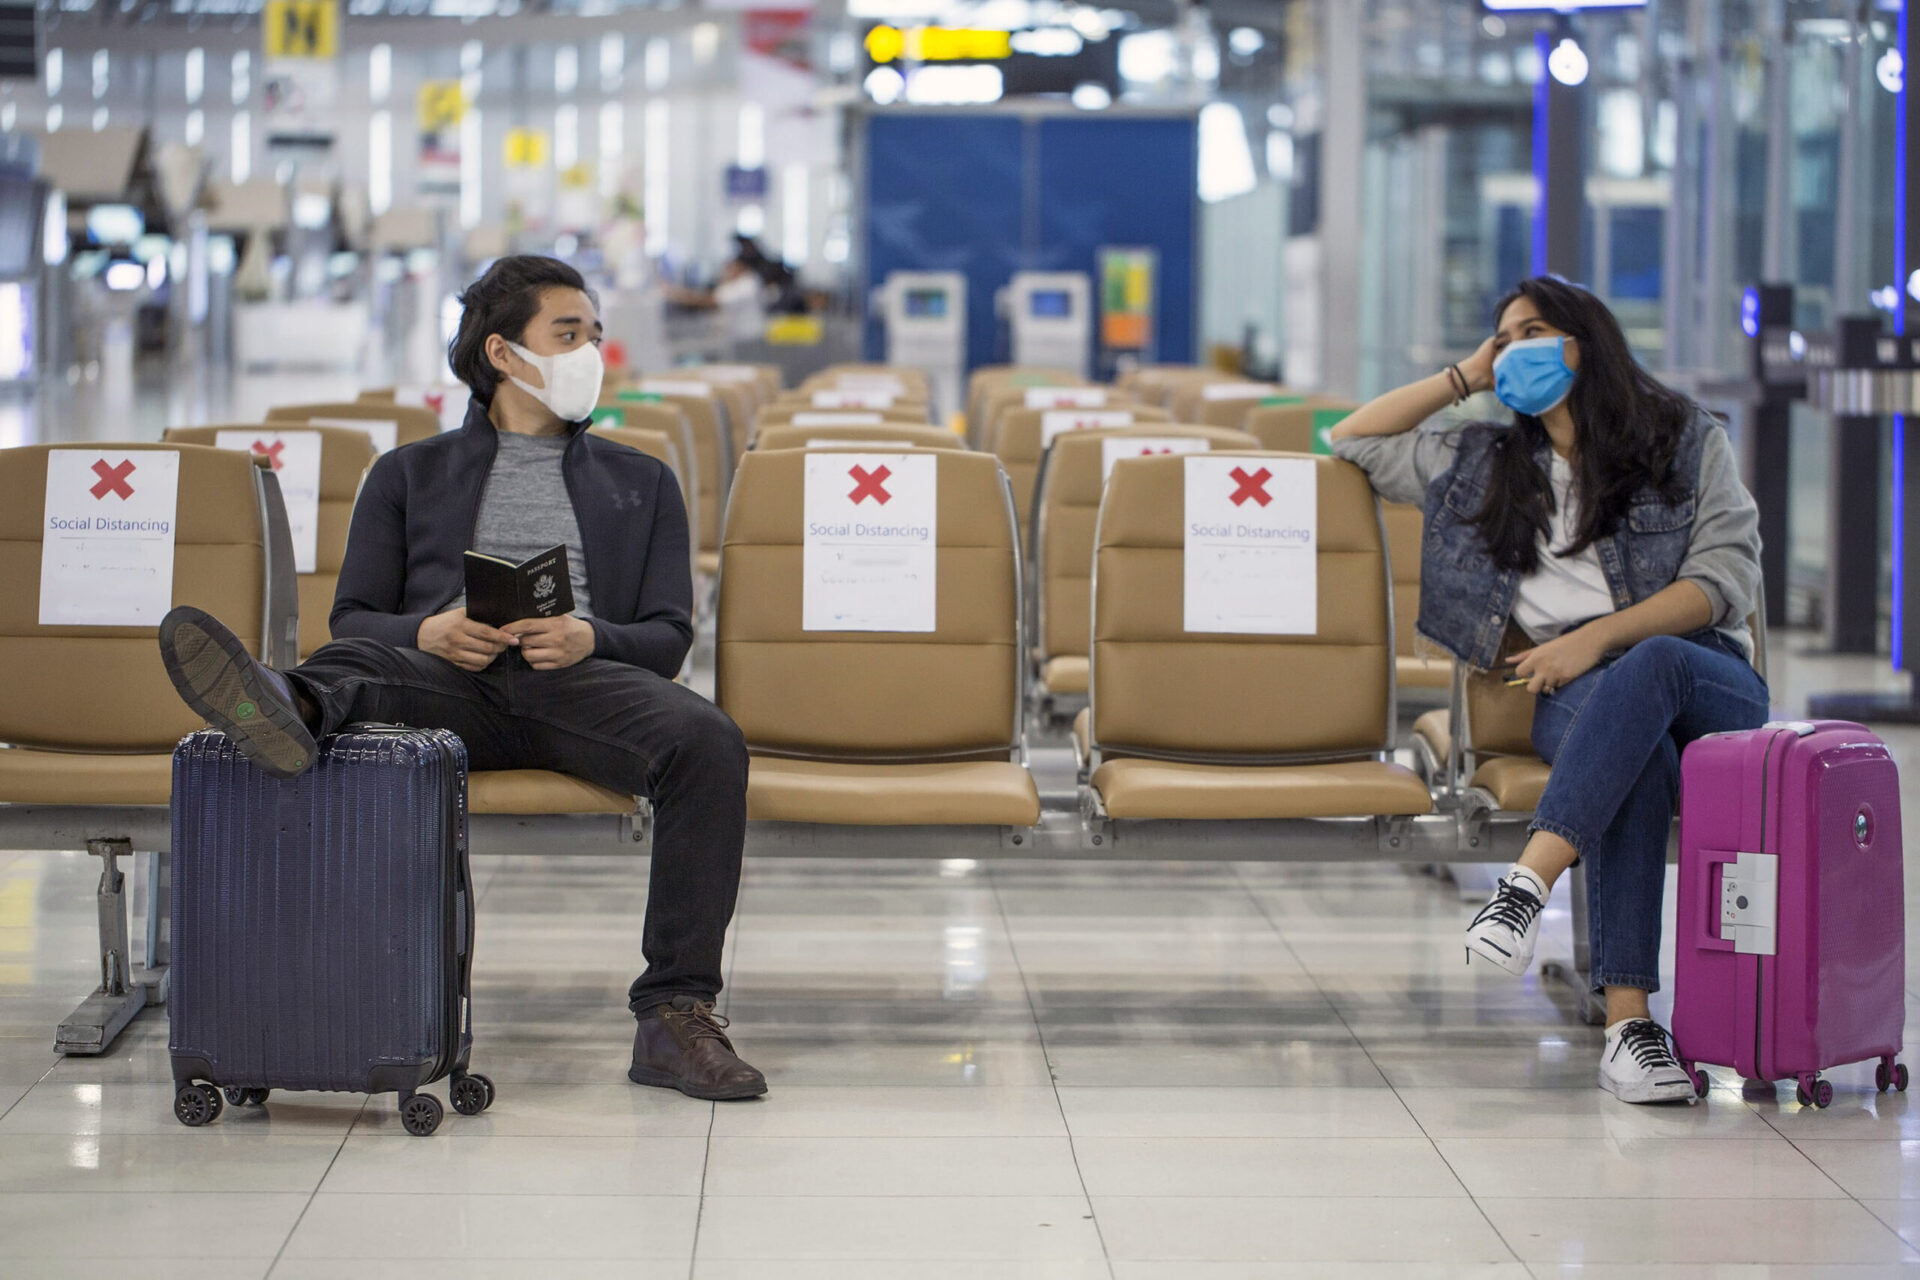 Airport waiting area with Covid-19 restrictions